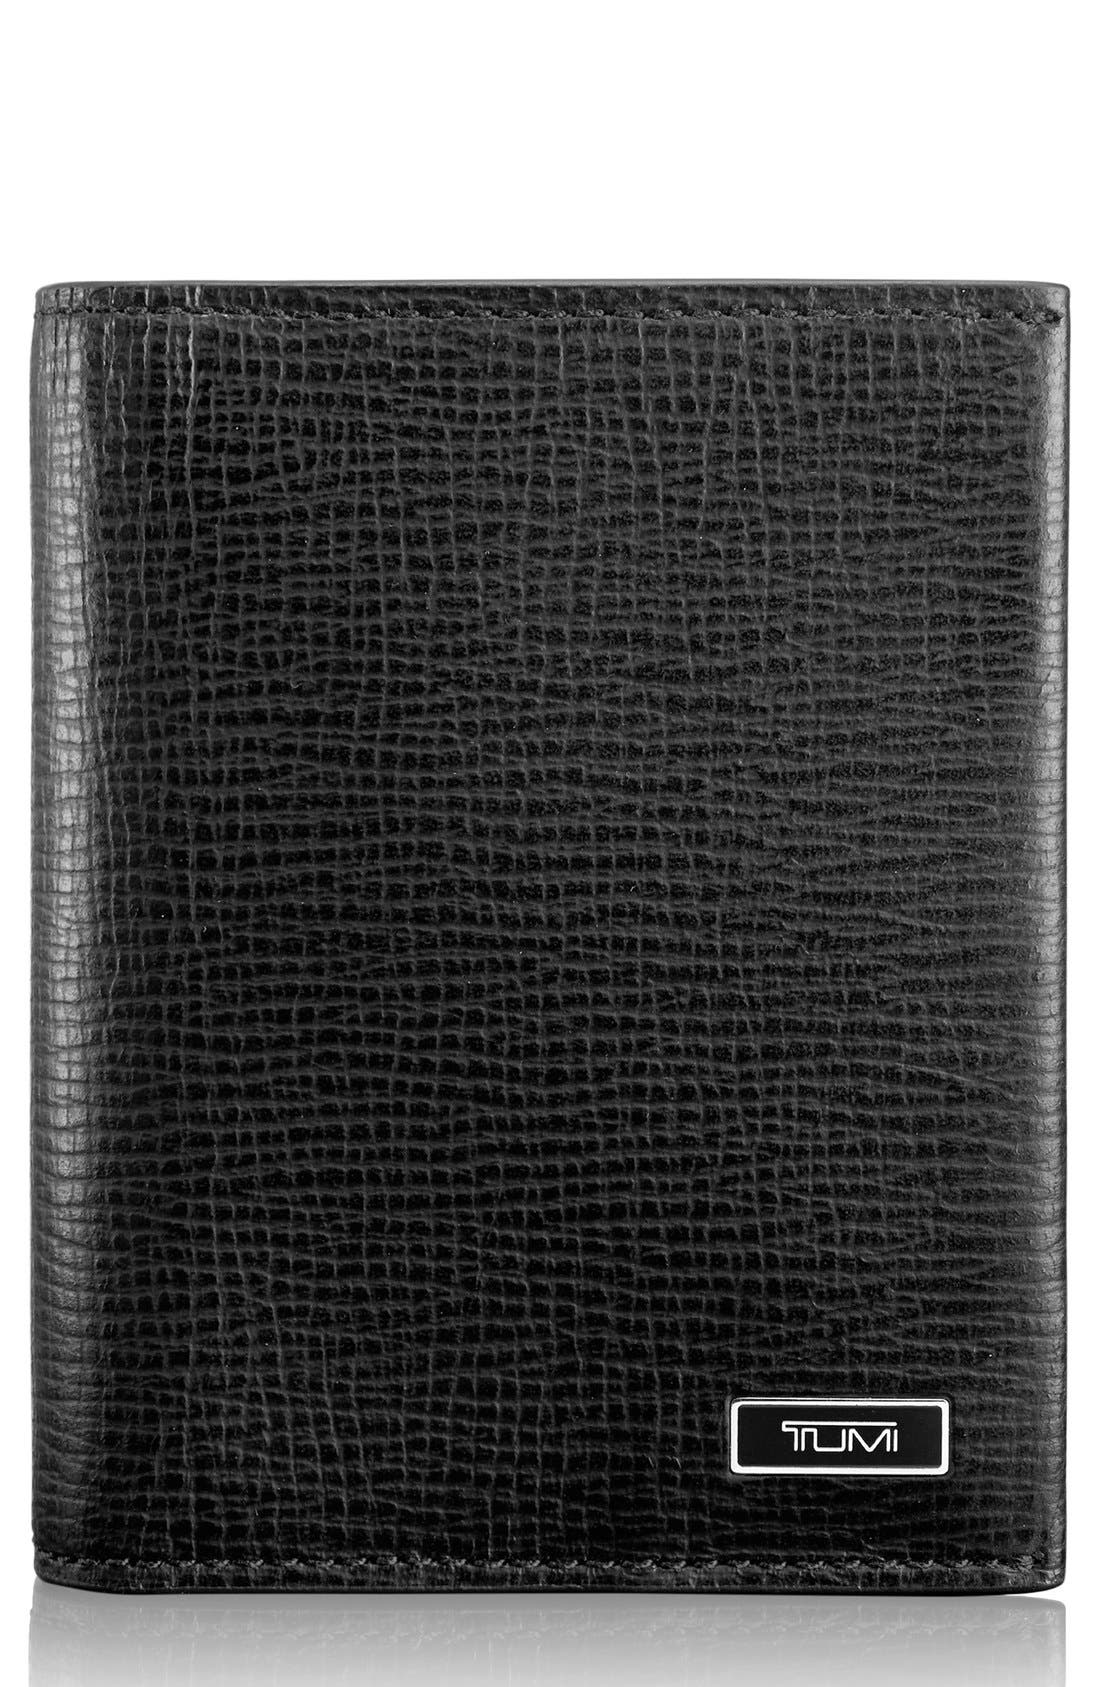 Alternate Image 1 Selected - Tumi 'Monaco' Leather Card Case